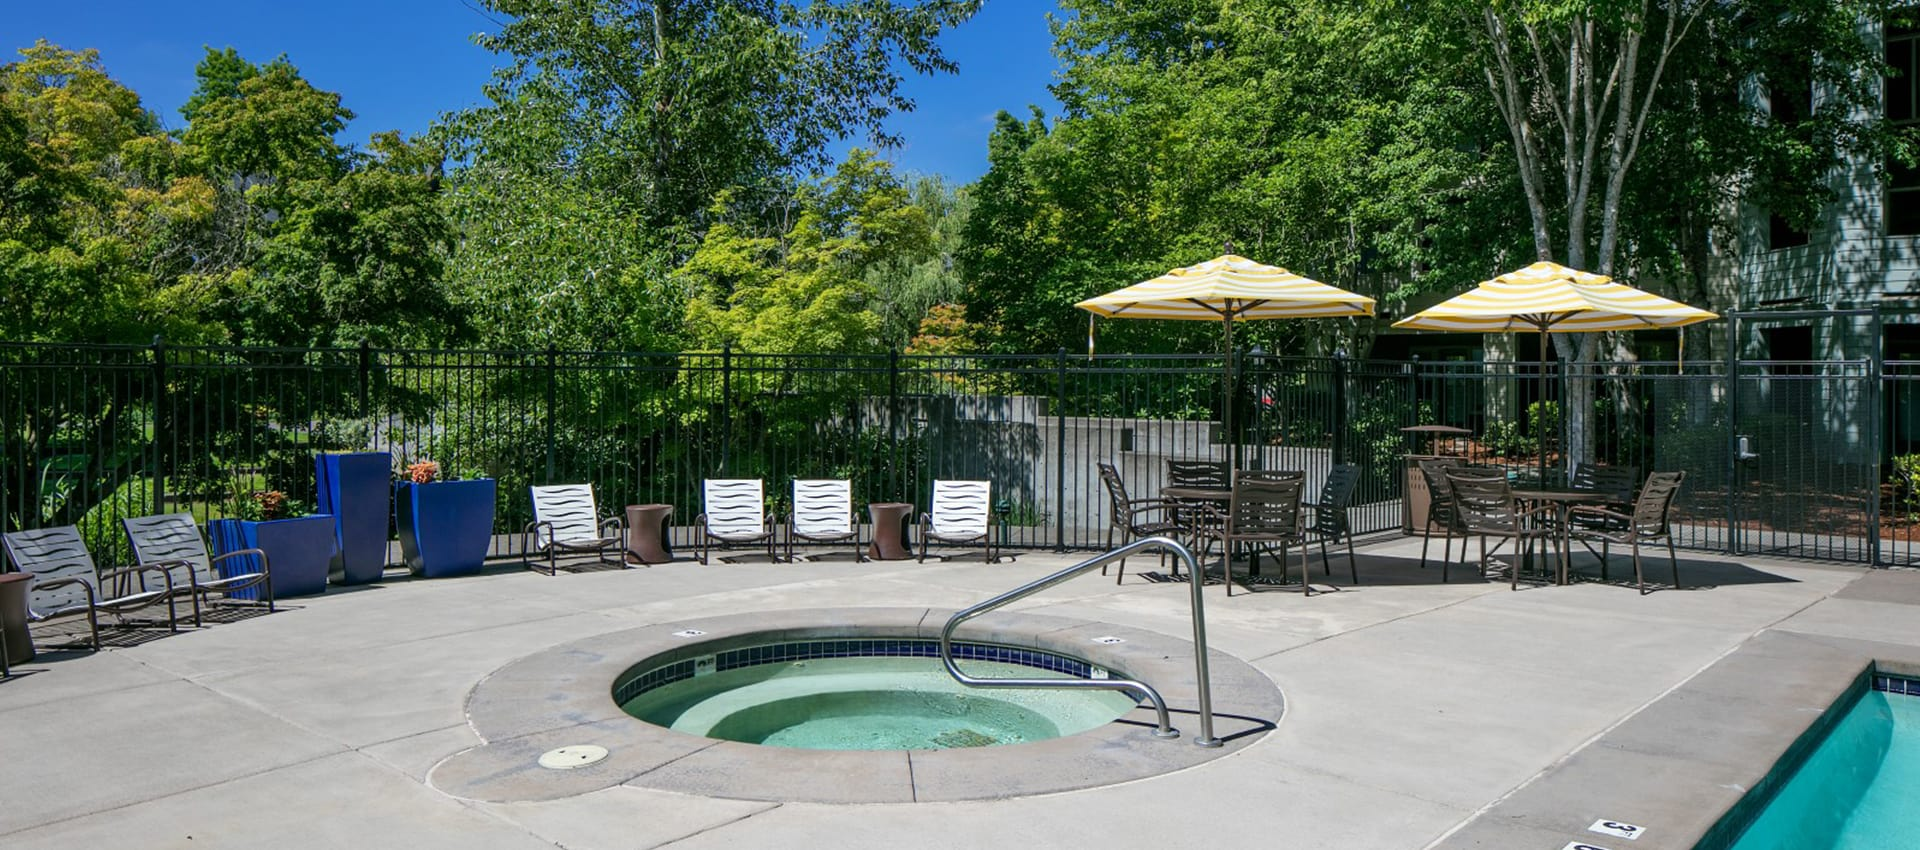 Table With Sun Umbrella By Hot Tub at Waterhouse Place in Beaverton, OR